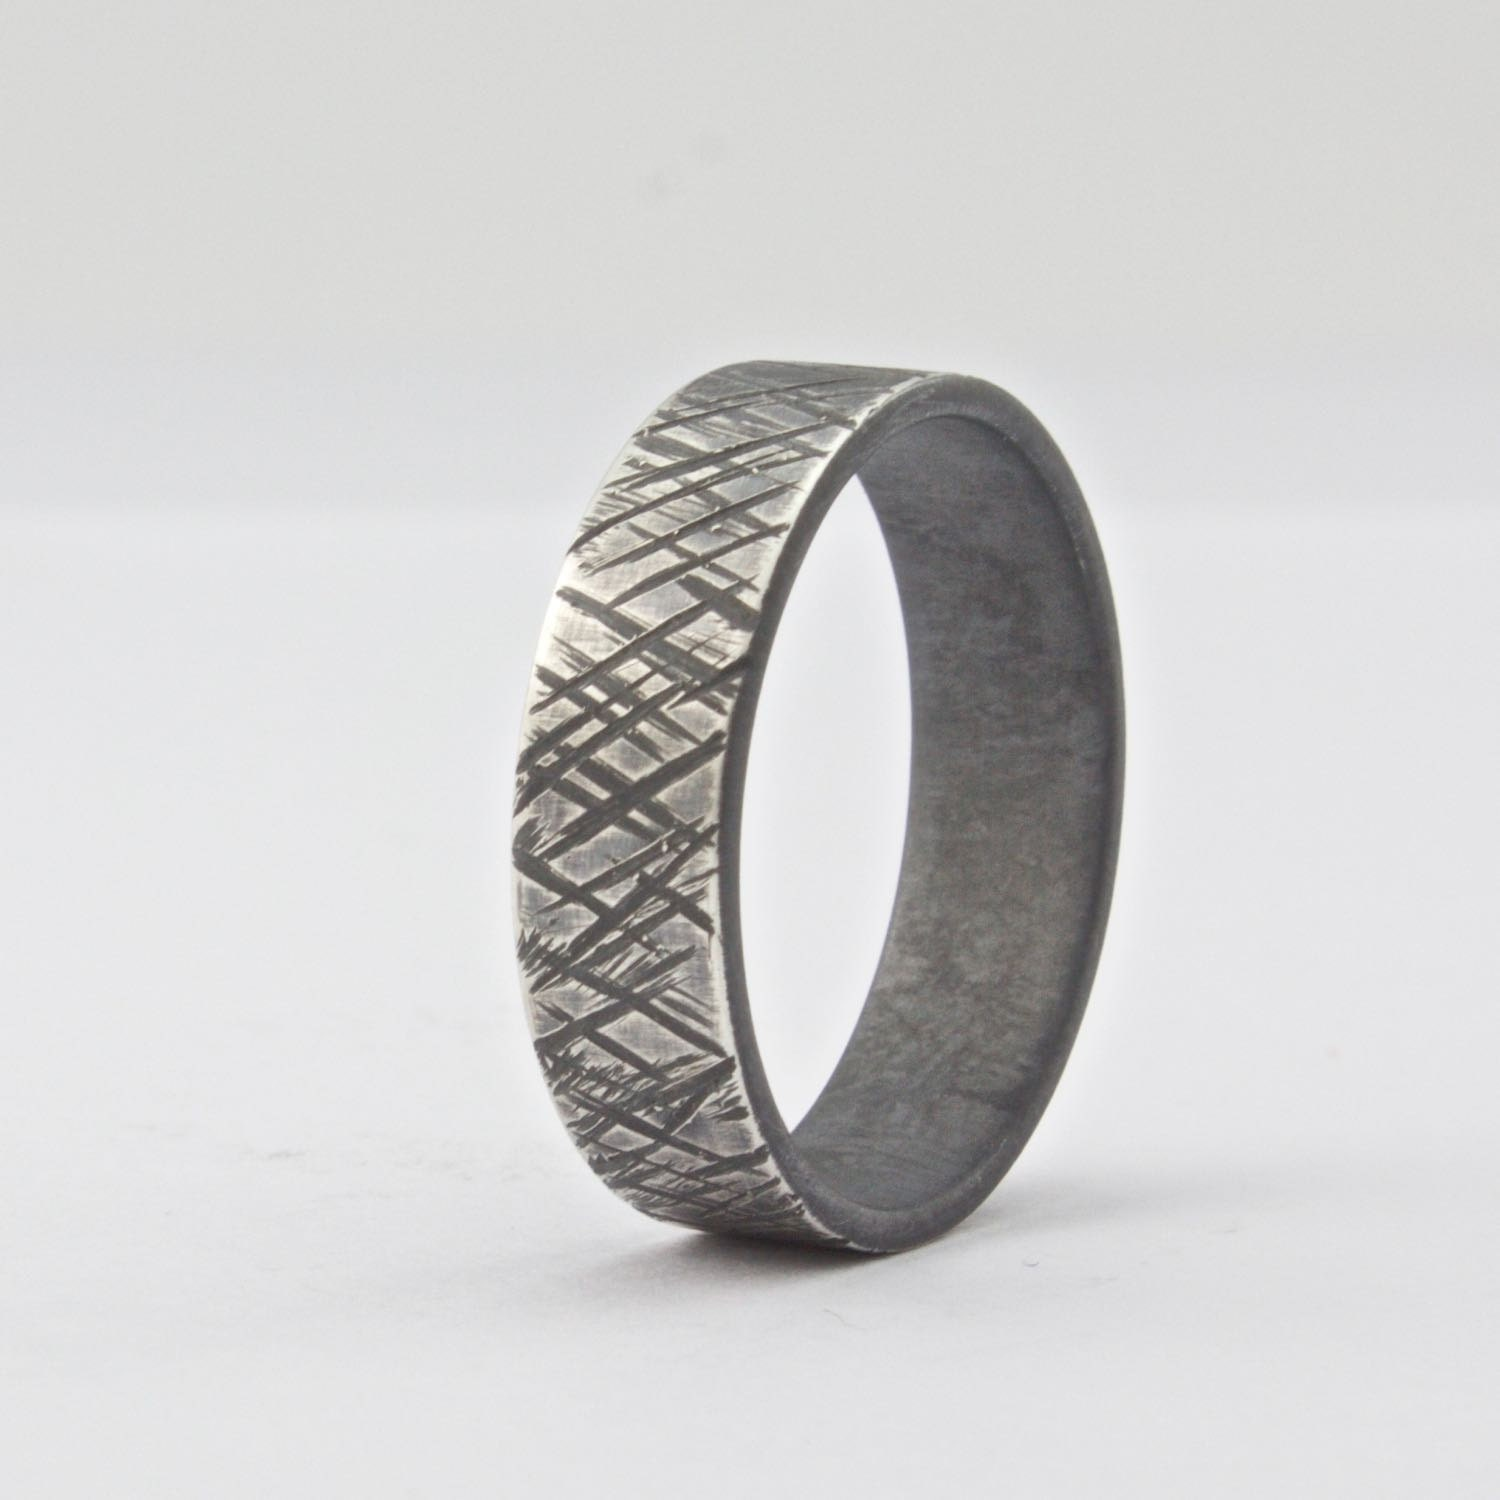 wide sterling silver ring mens wedding band rough finish